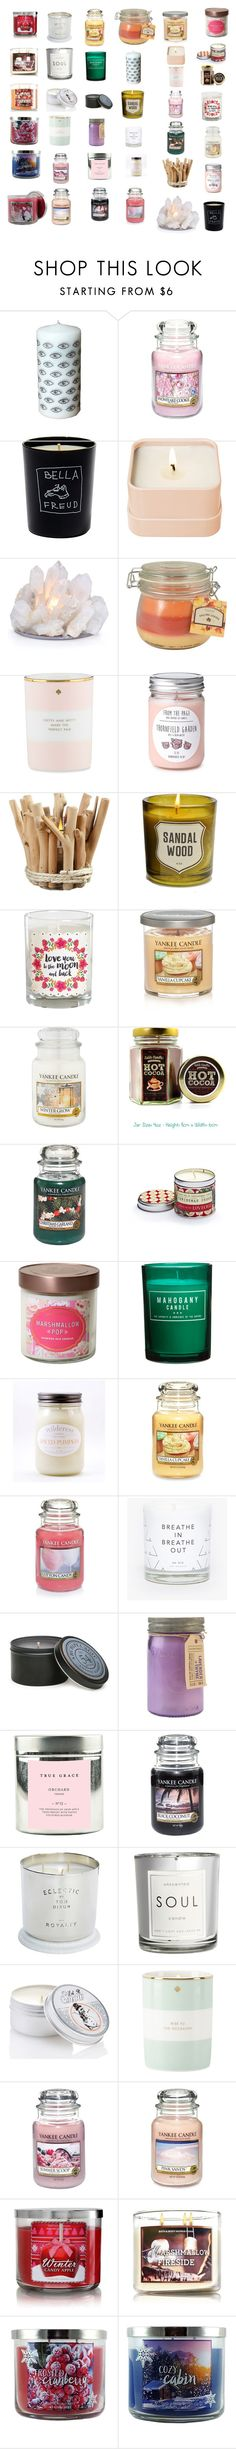 """""""Untitled #198"""" by georgia-rasmussen-gr ❤ liked on Polyvore featuring interior, interiors, interior design, home, home decor, interior decorating, Yankee Candle, Bella Freud, Henri Bendel and Sonoma life + style"""